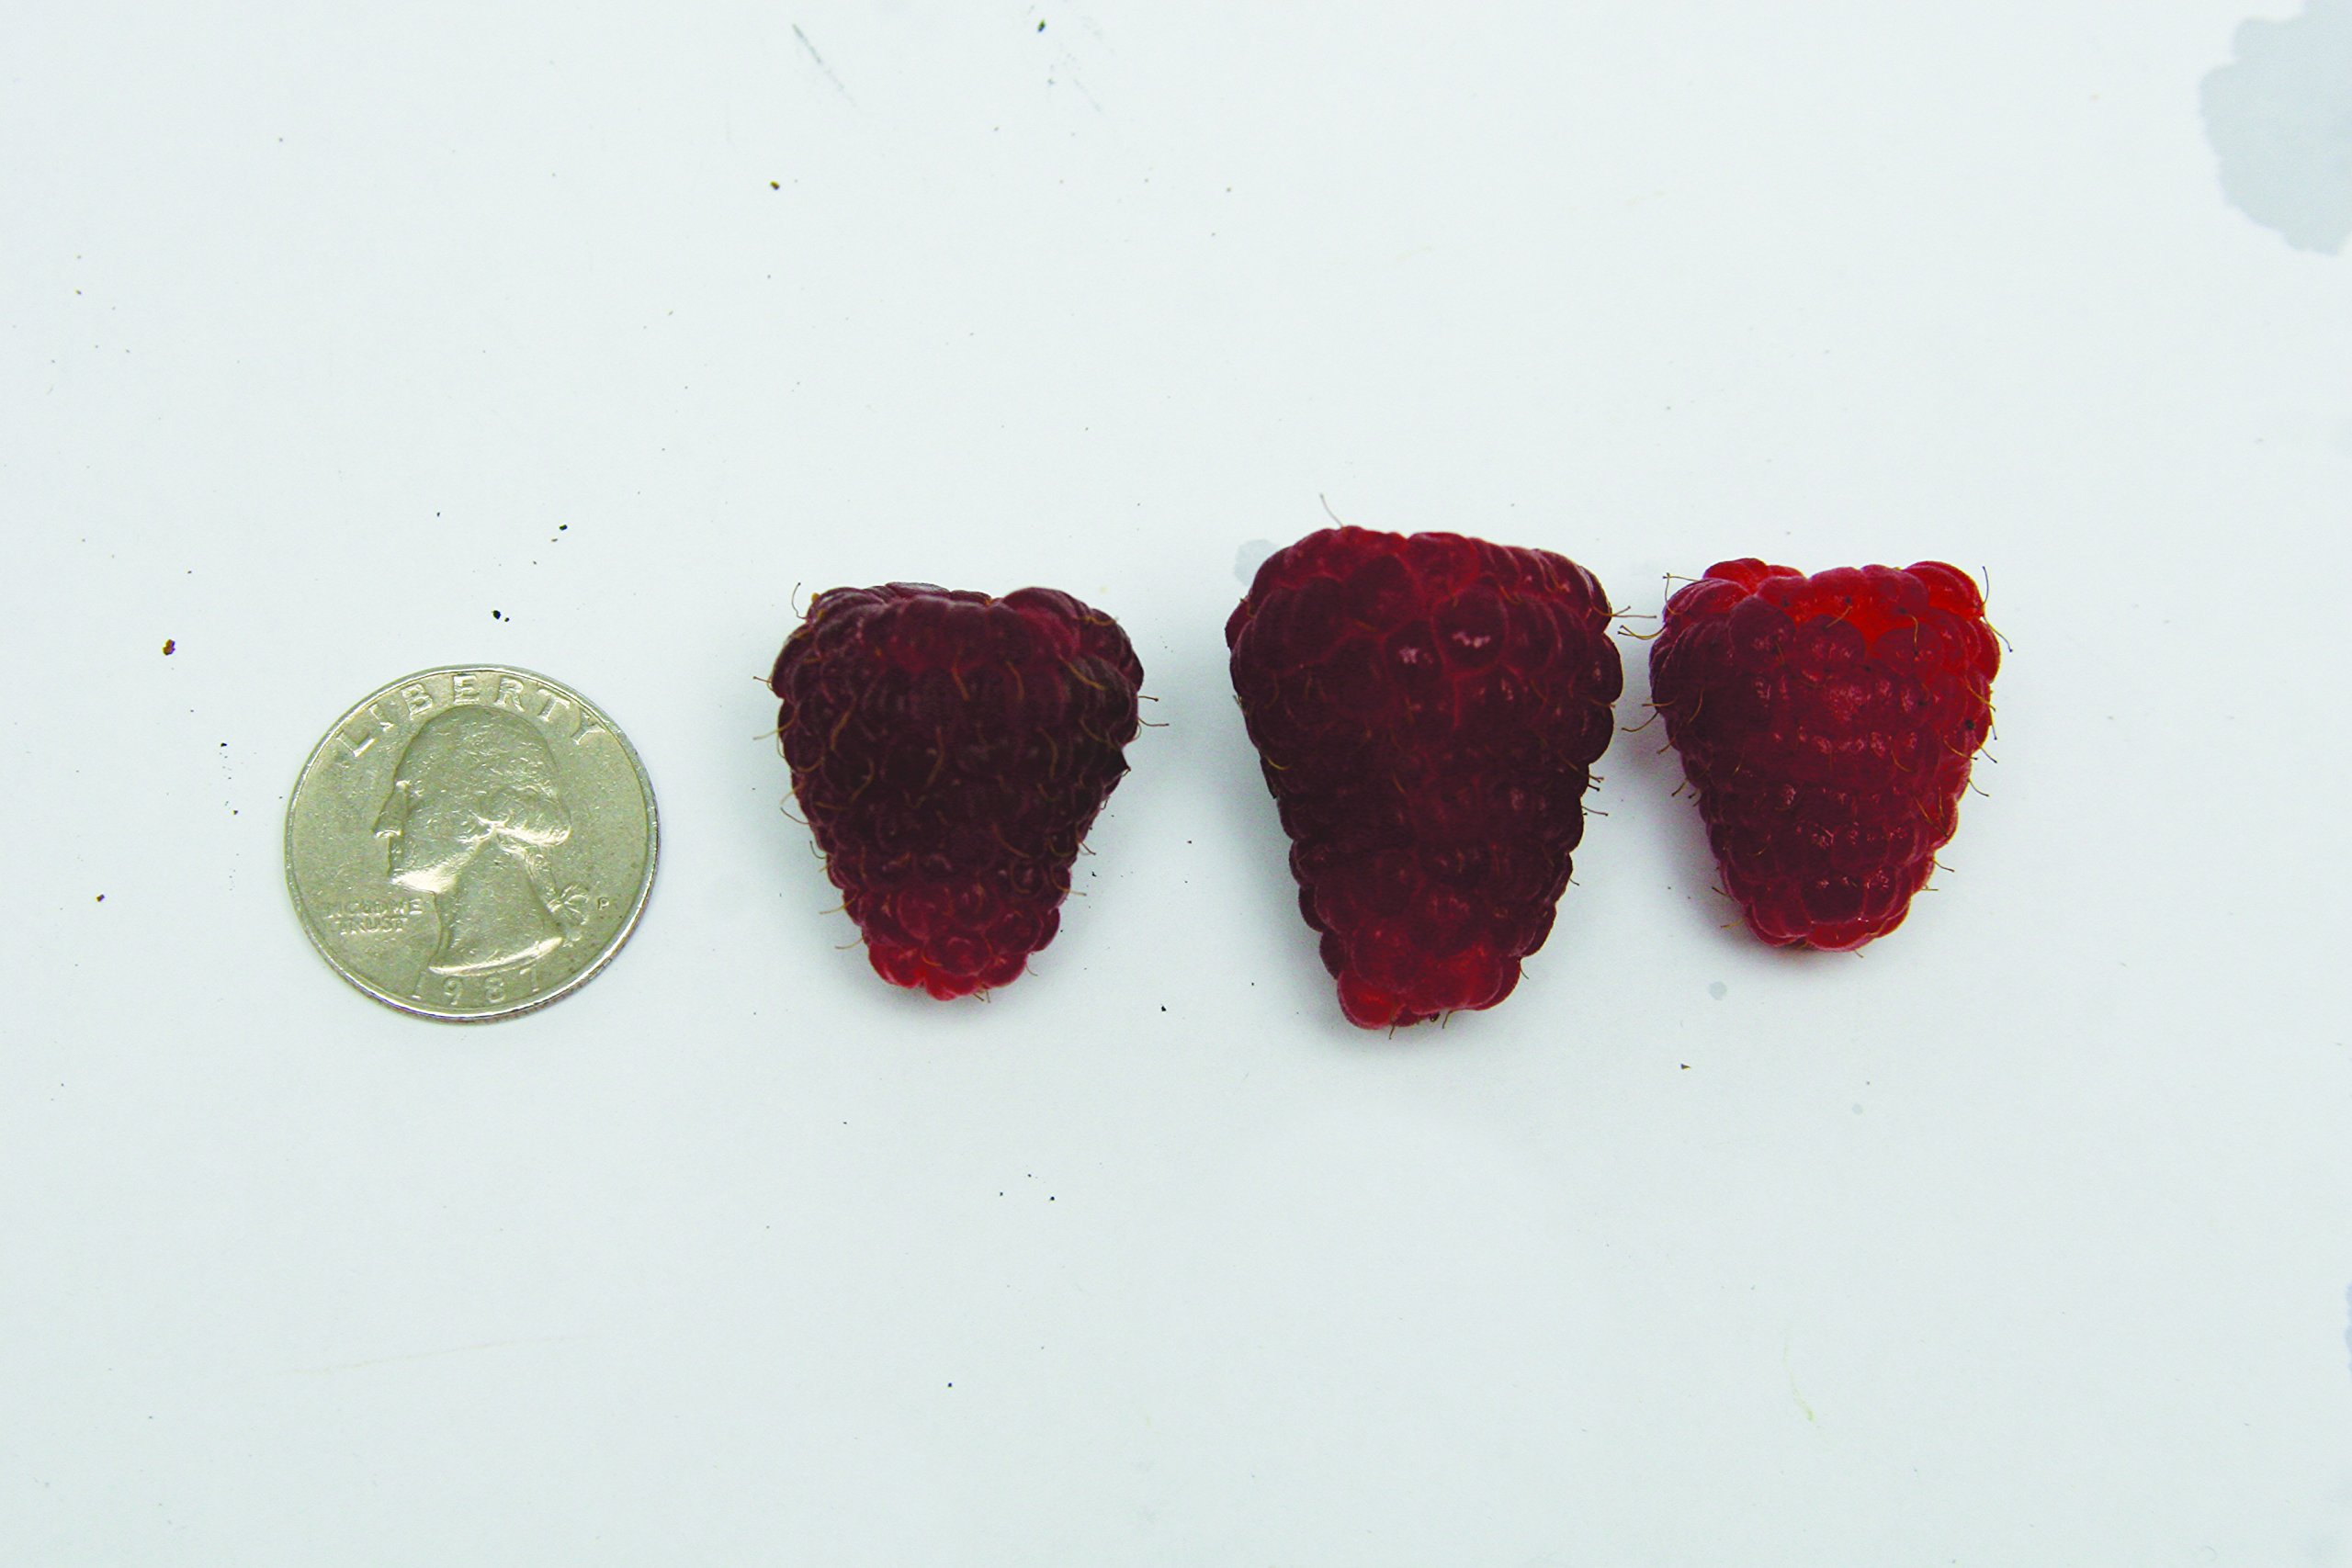 Burpee Thornless Fall Fruiting Raspberry 'Joan J' shipped as 5 BARE ROOT PLANTS by Burpee (Image #3)